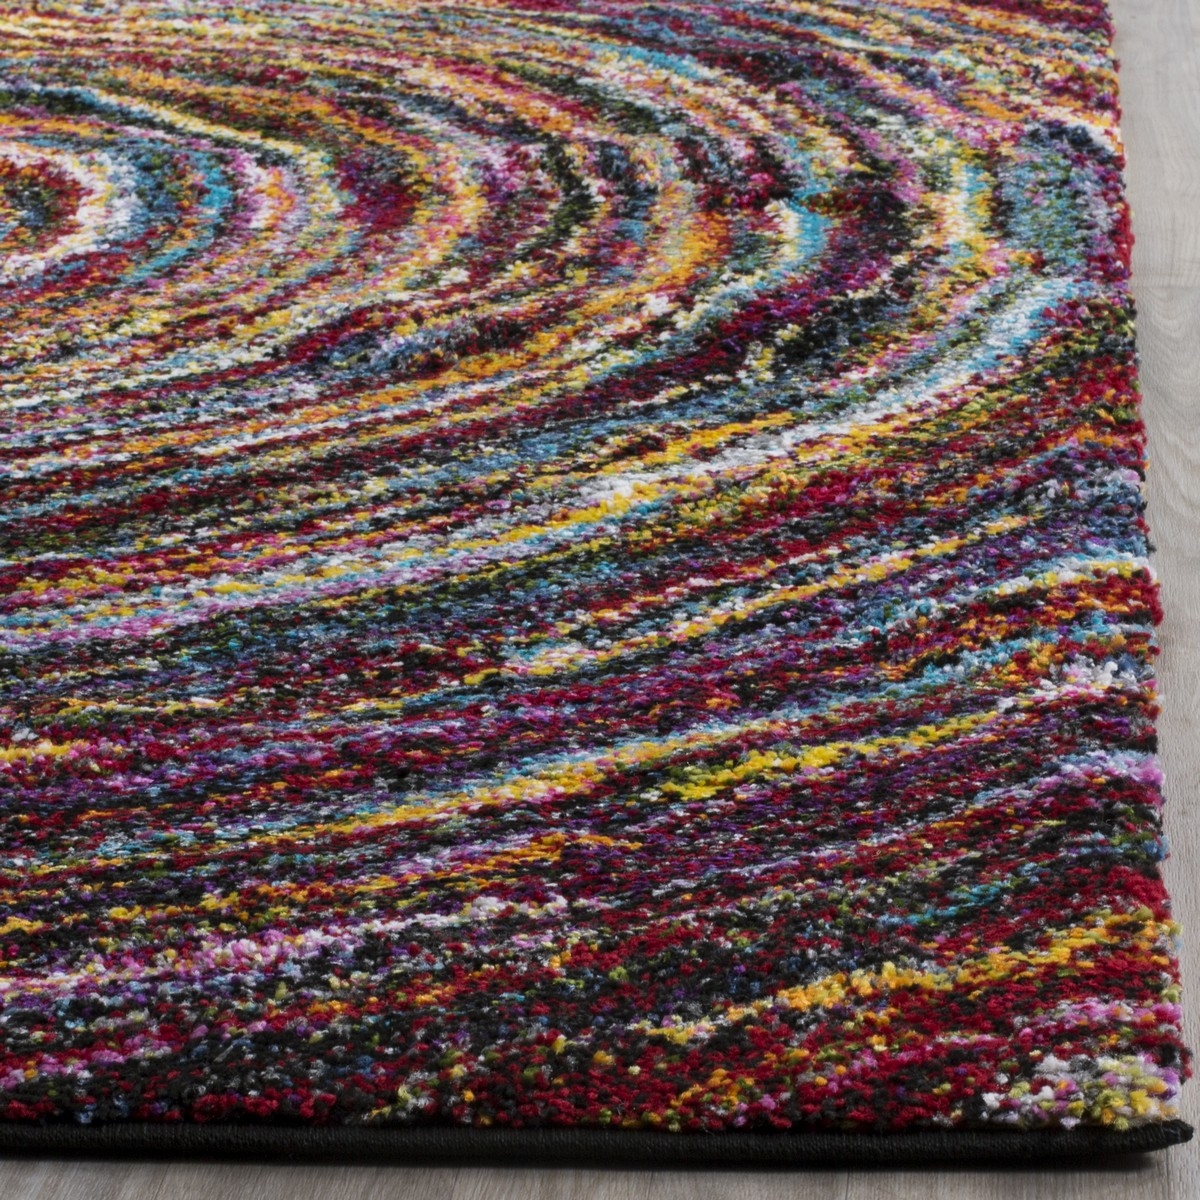 Colorful Shag Rug Fiesta Shag Collection Safavieh